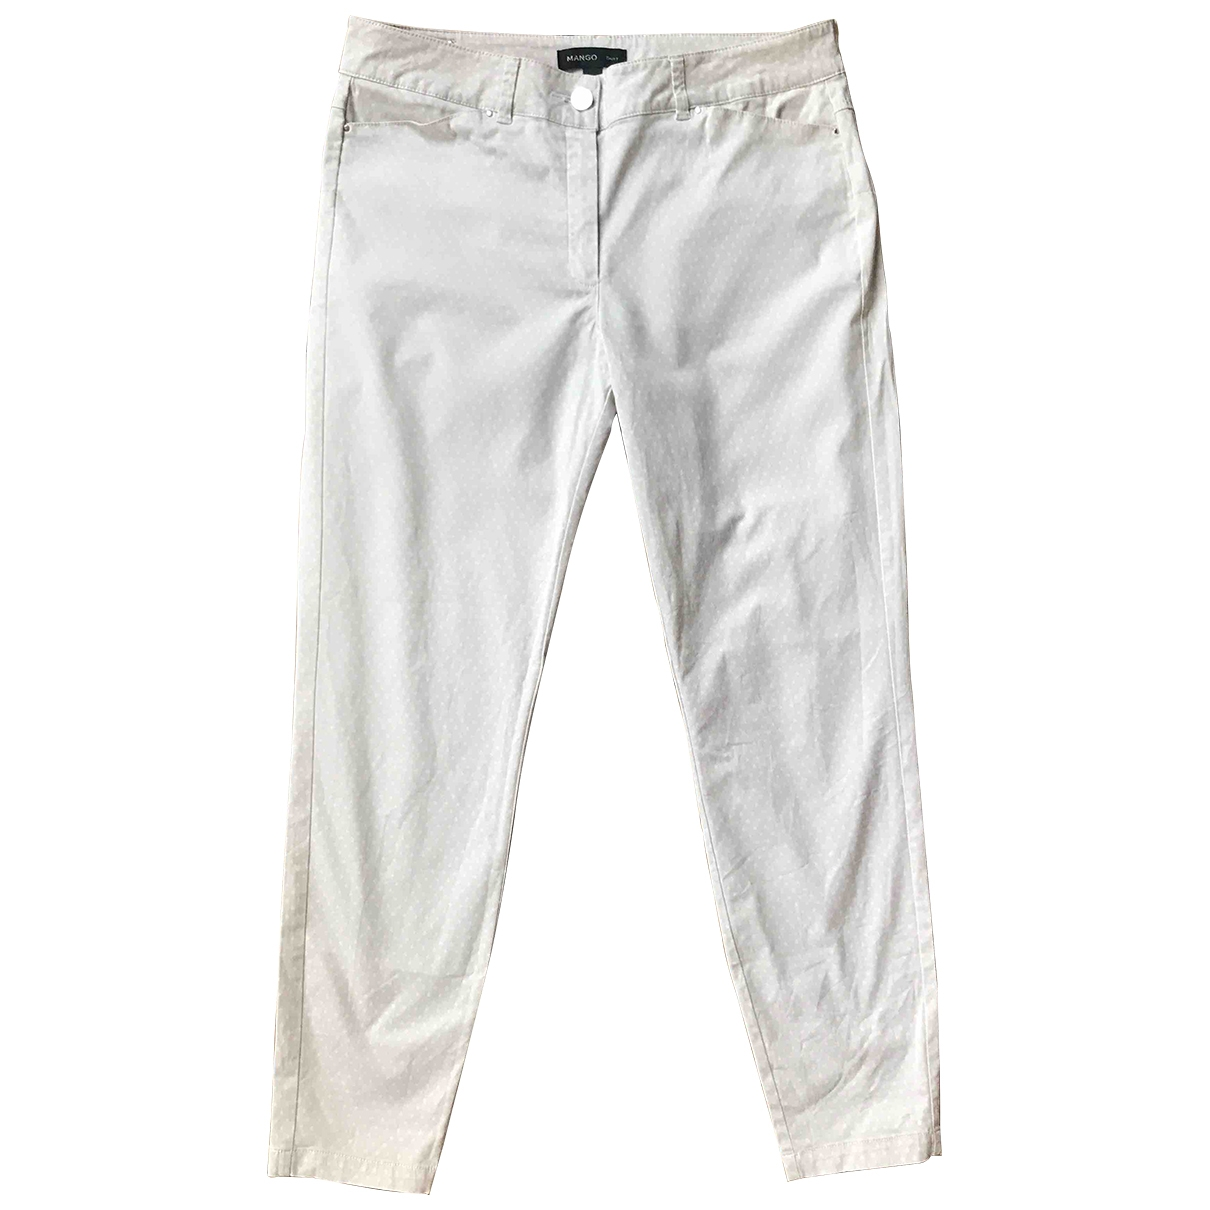 Mango \N Beige Cotton Trousers for Women 38 FR